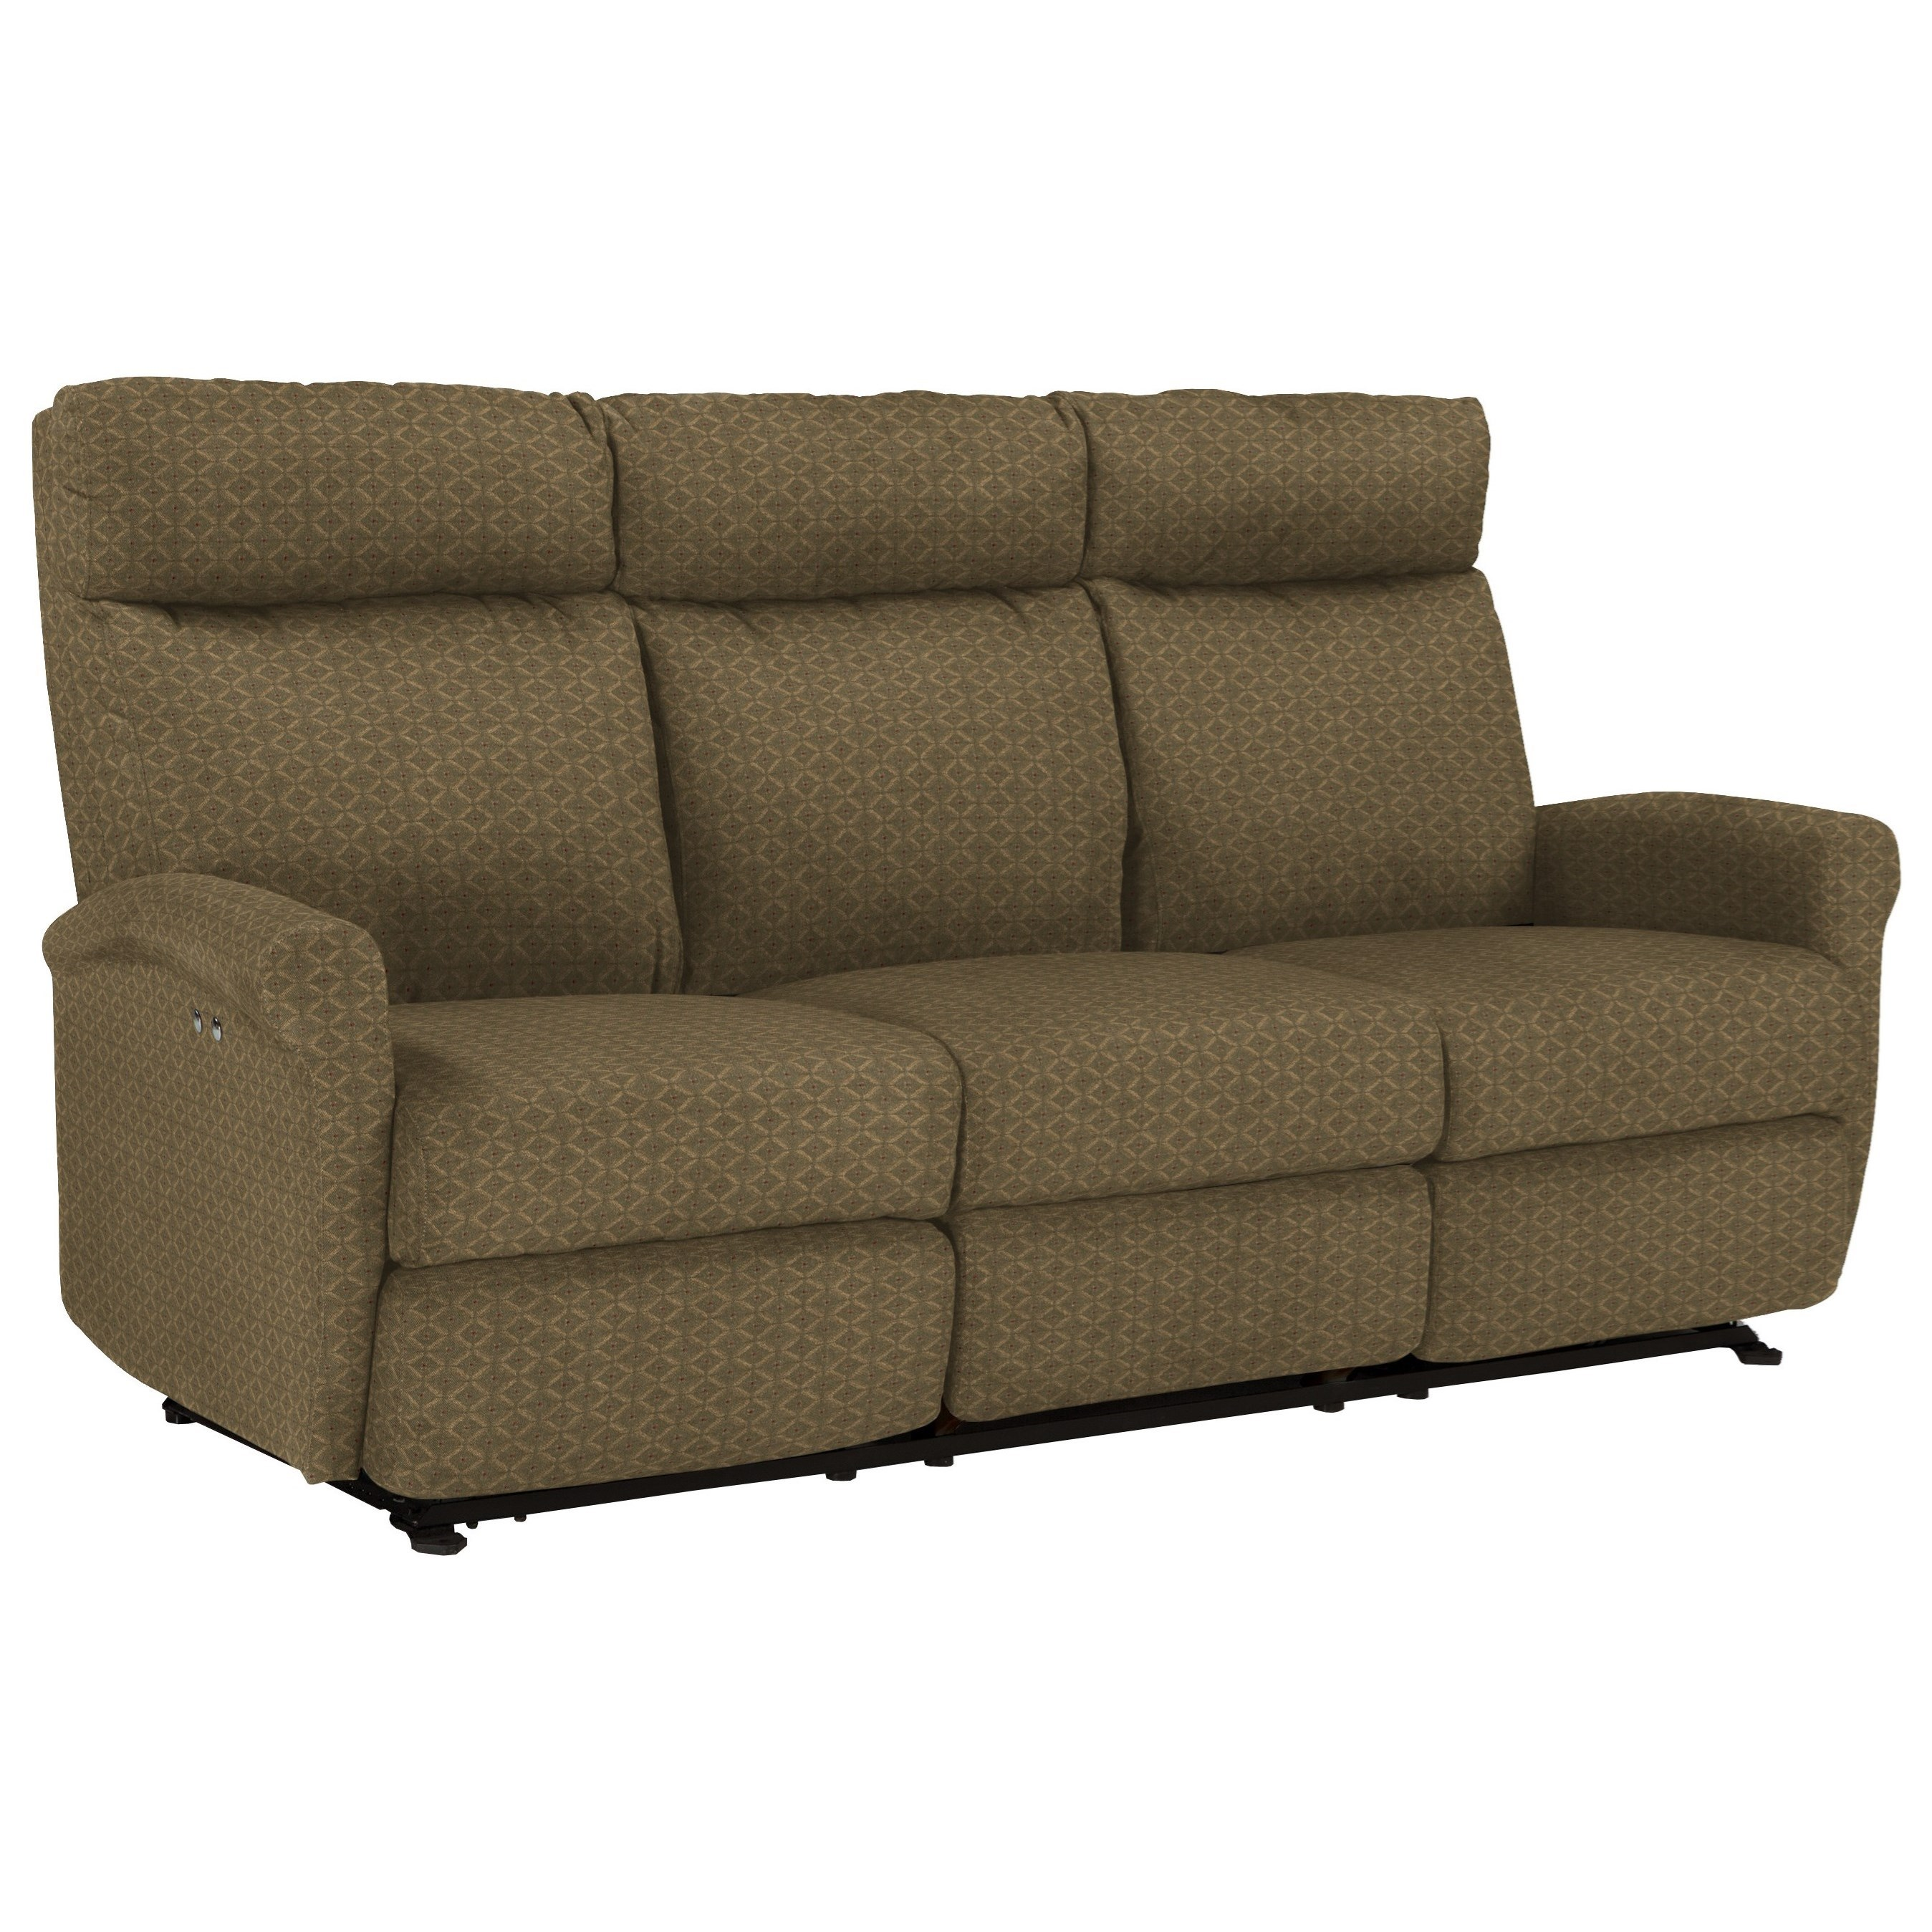 Best Home Furnishings Codie Power Reclining Sofa - Item Number: 527306223-18021